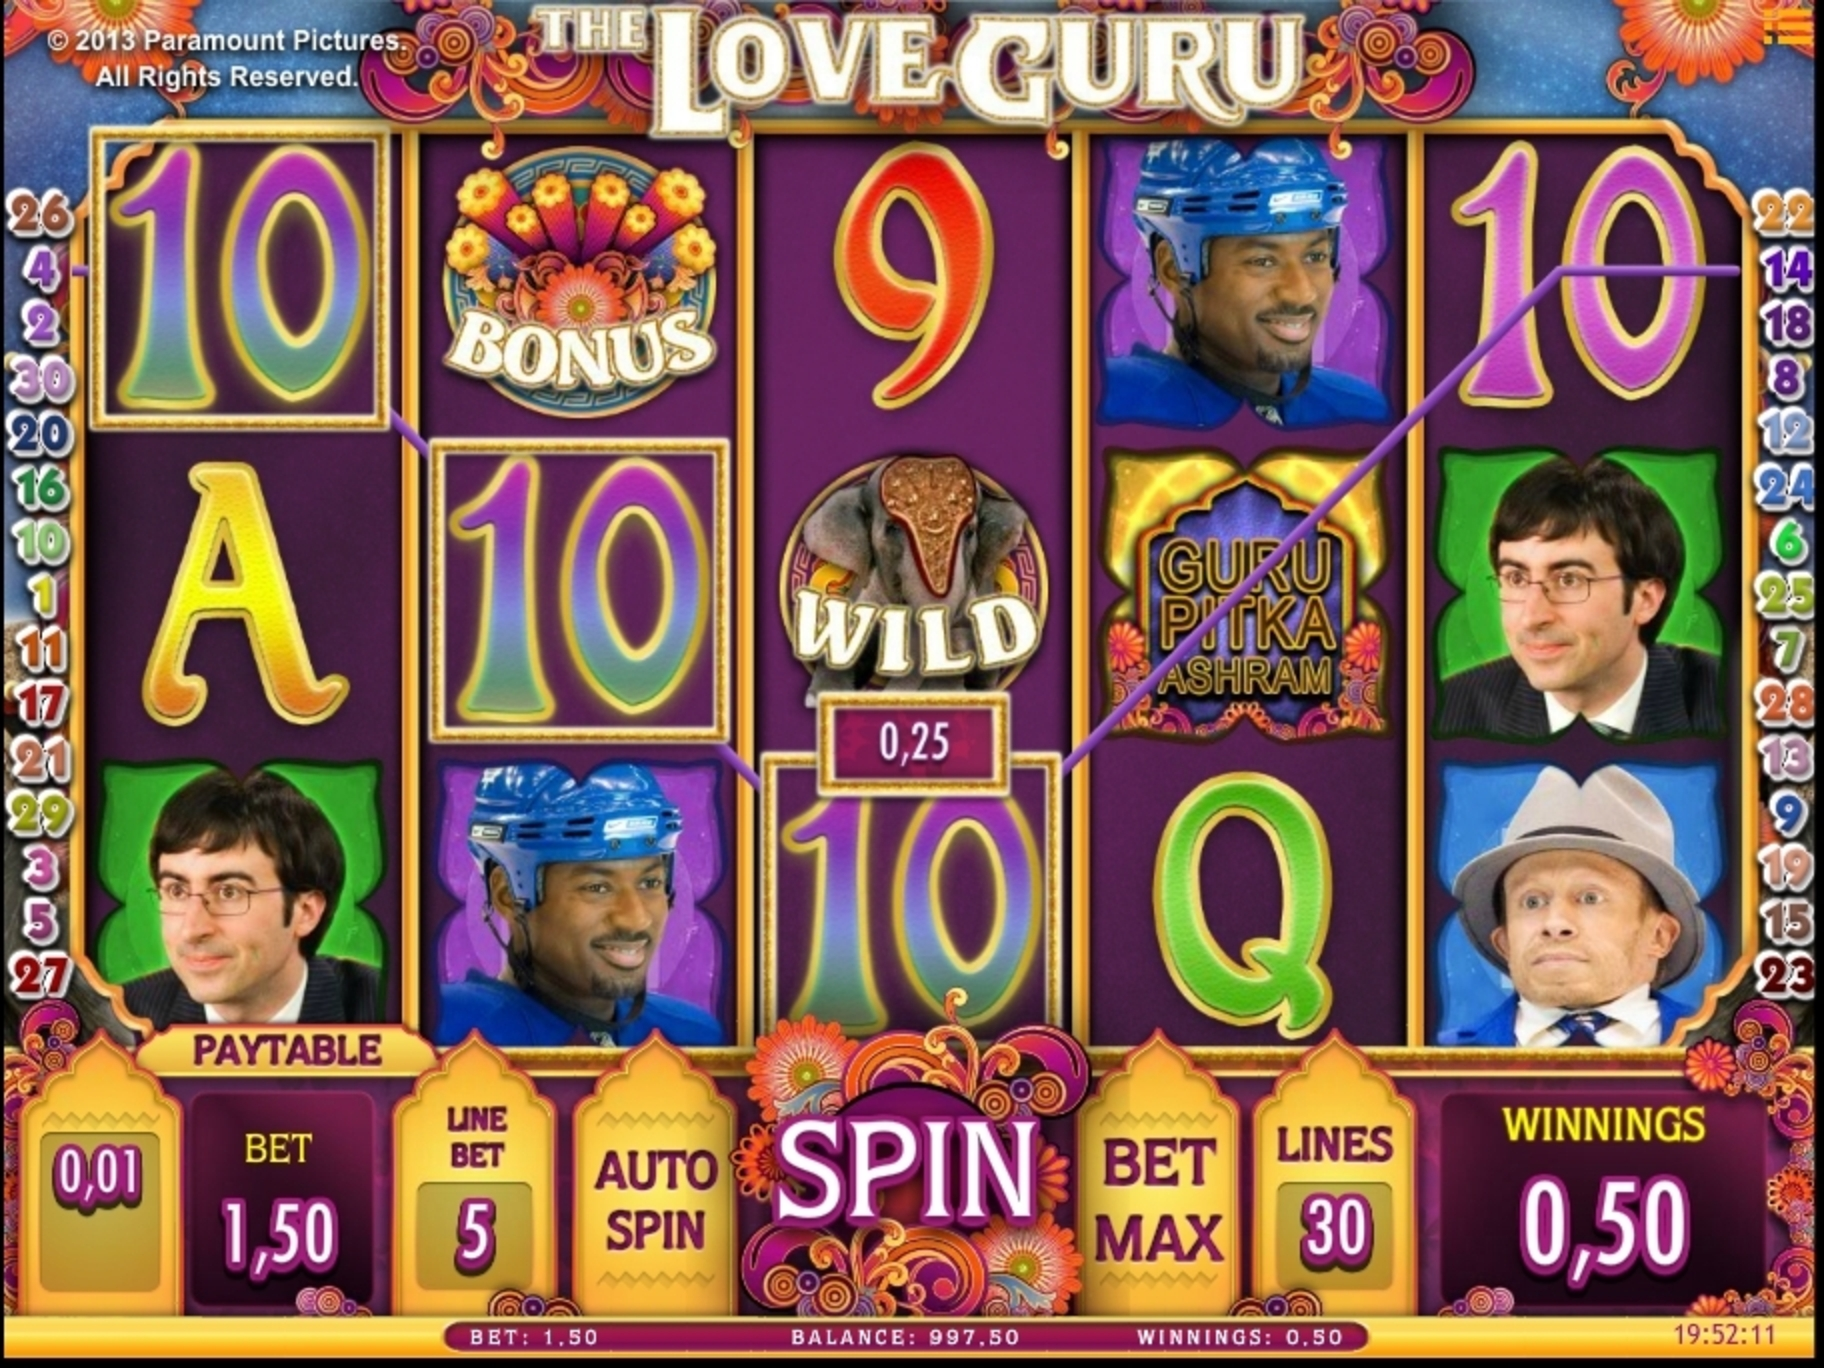 Win Money in The Love Guru Free Slot Game by iSoftBet